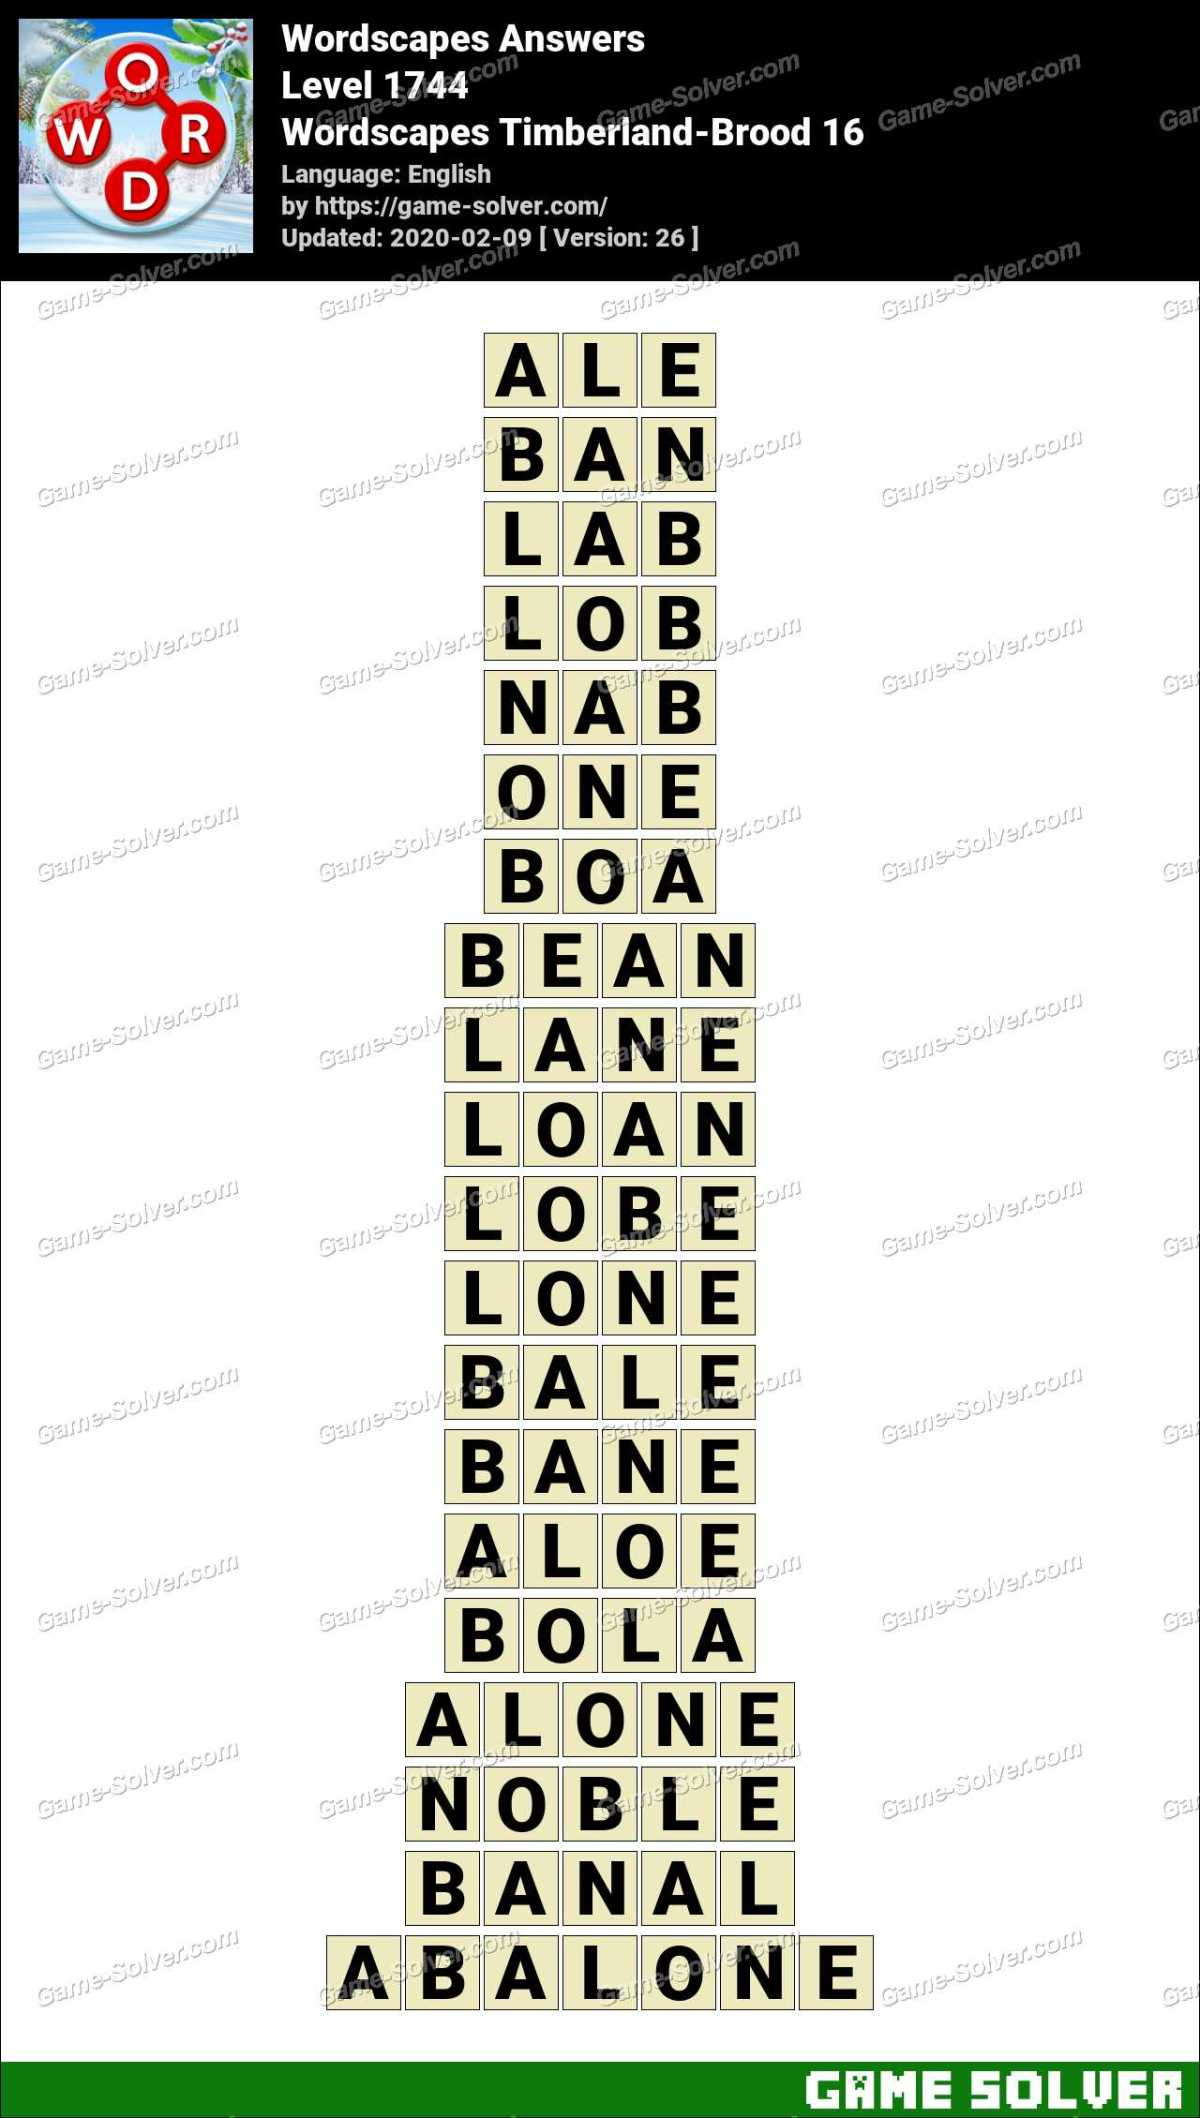 Wordscapes Timberland-Brood 16 Answers